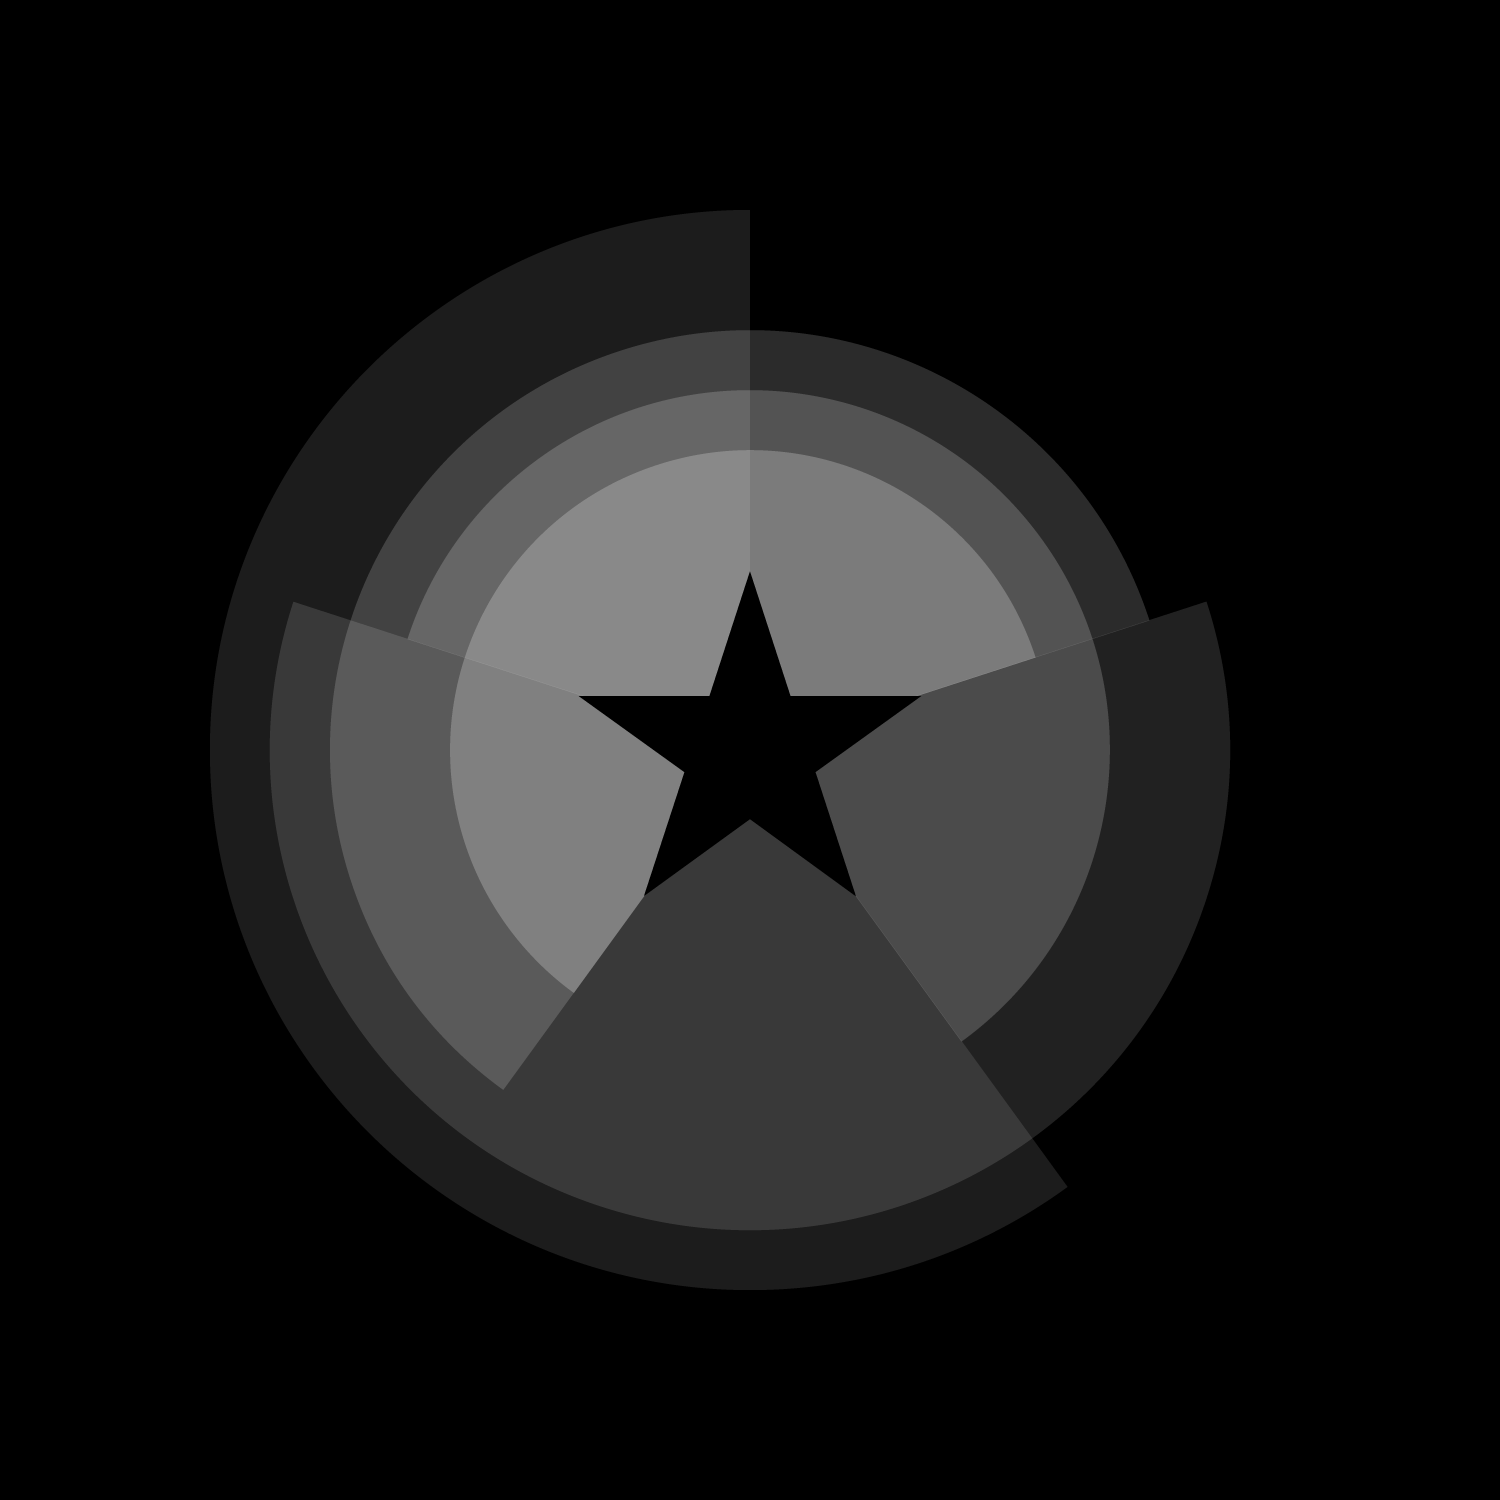 Star-White@3x.png